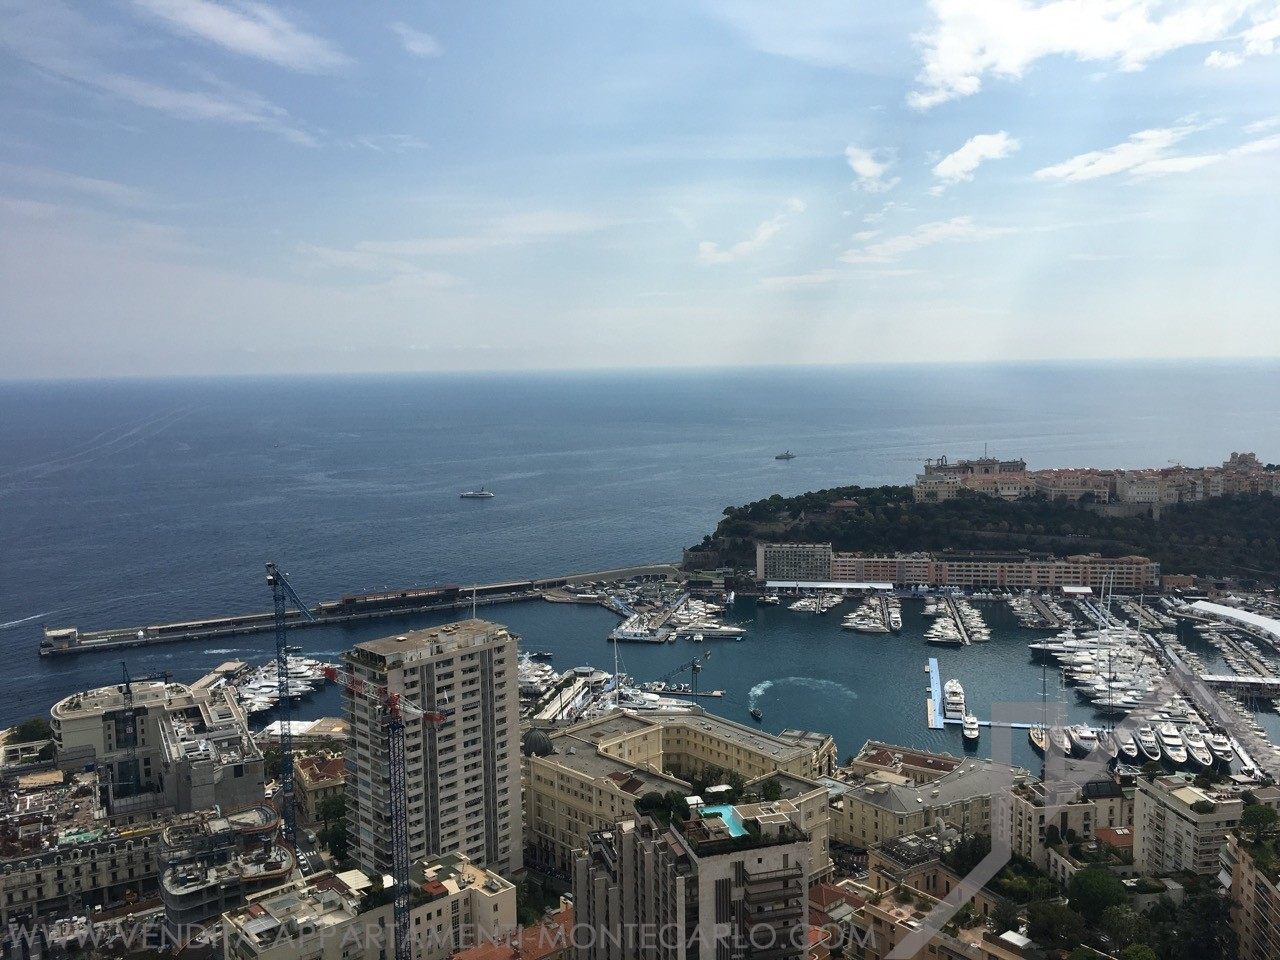 PENTHOUSE IN THE CENTER - EXCEPTIONAL VIEW - Properties for sale in Monaco